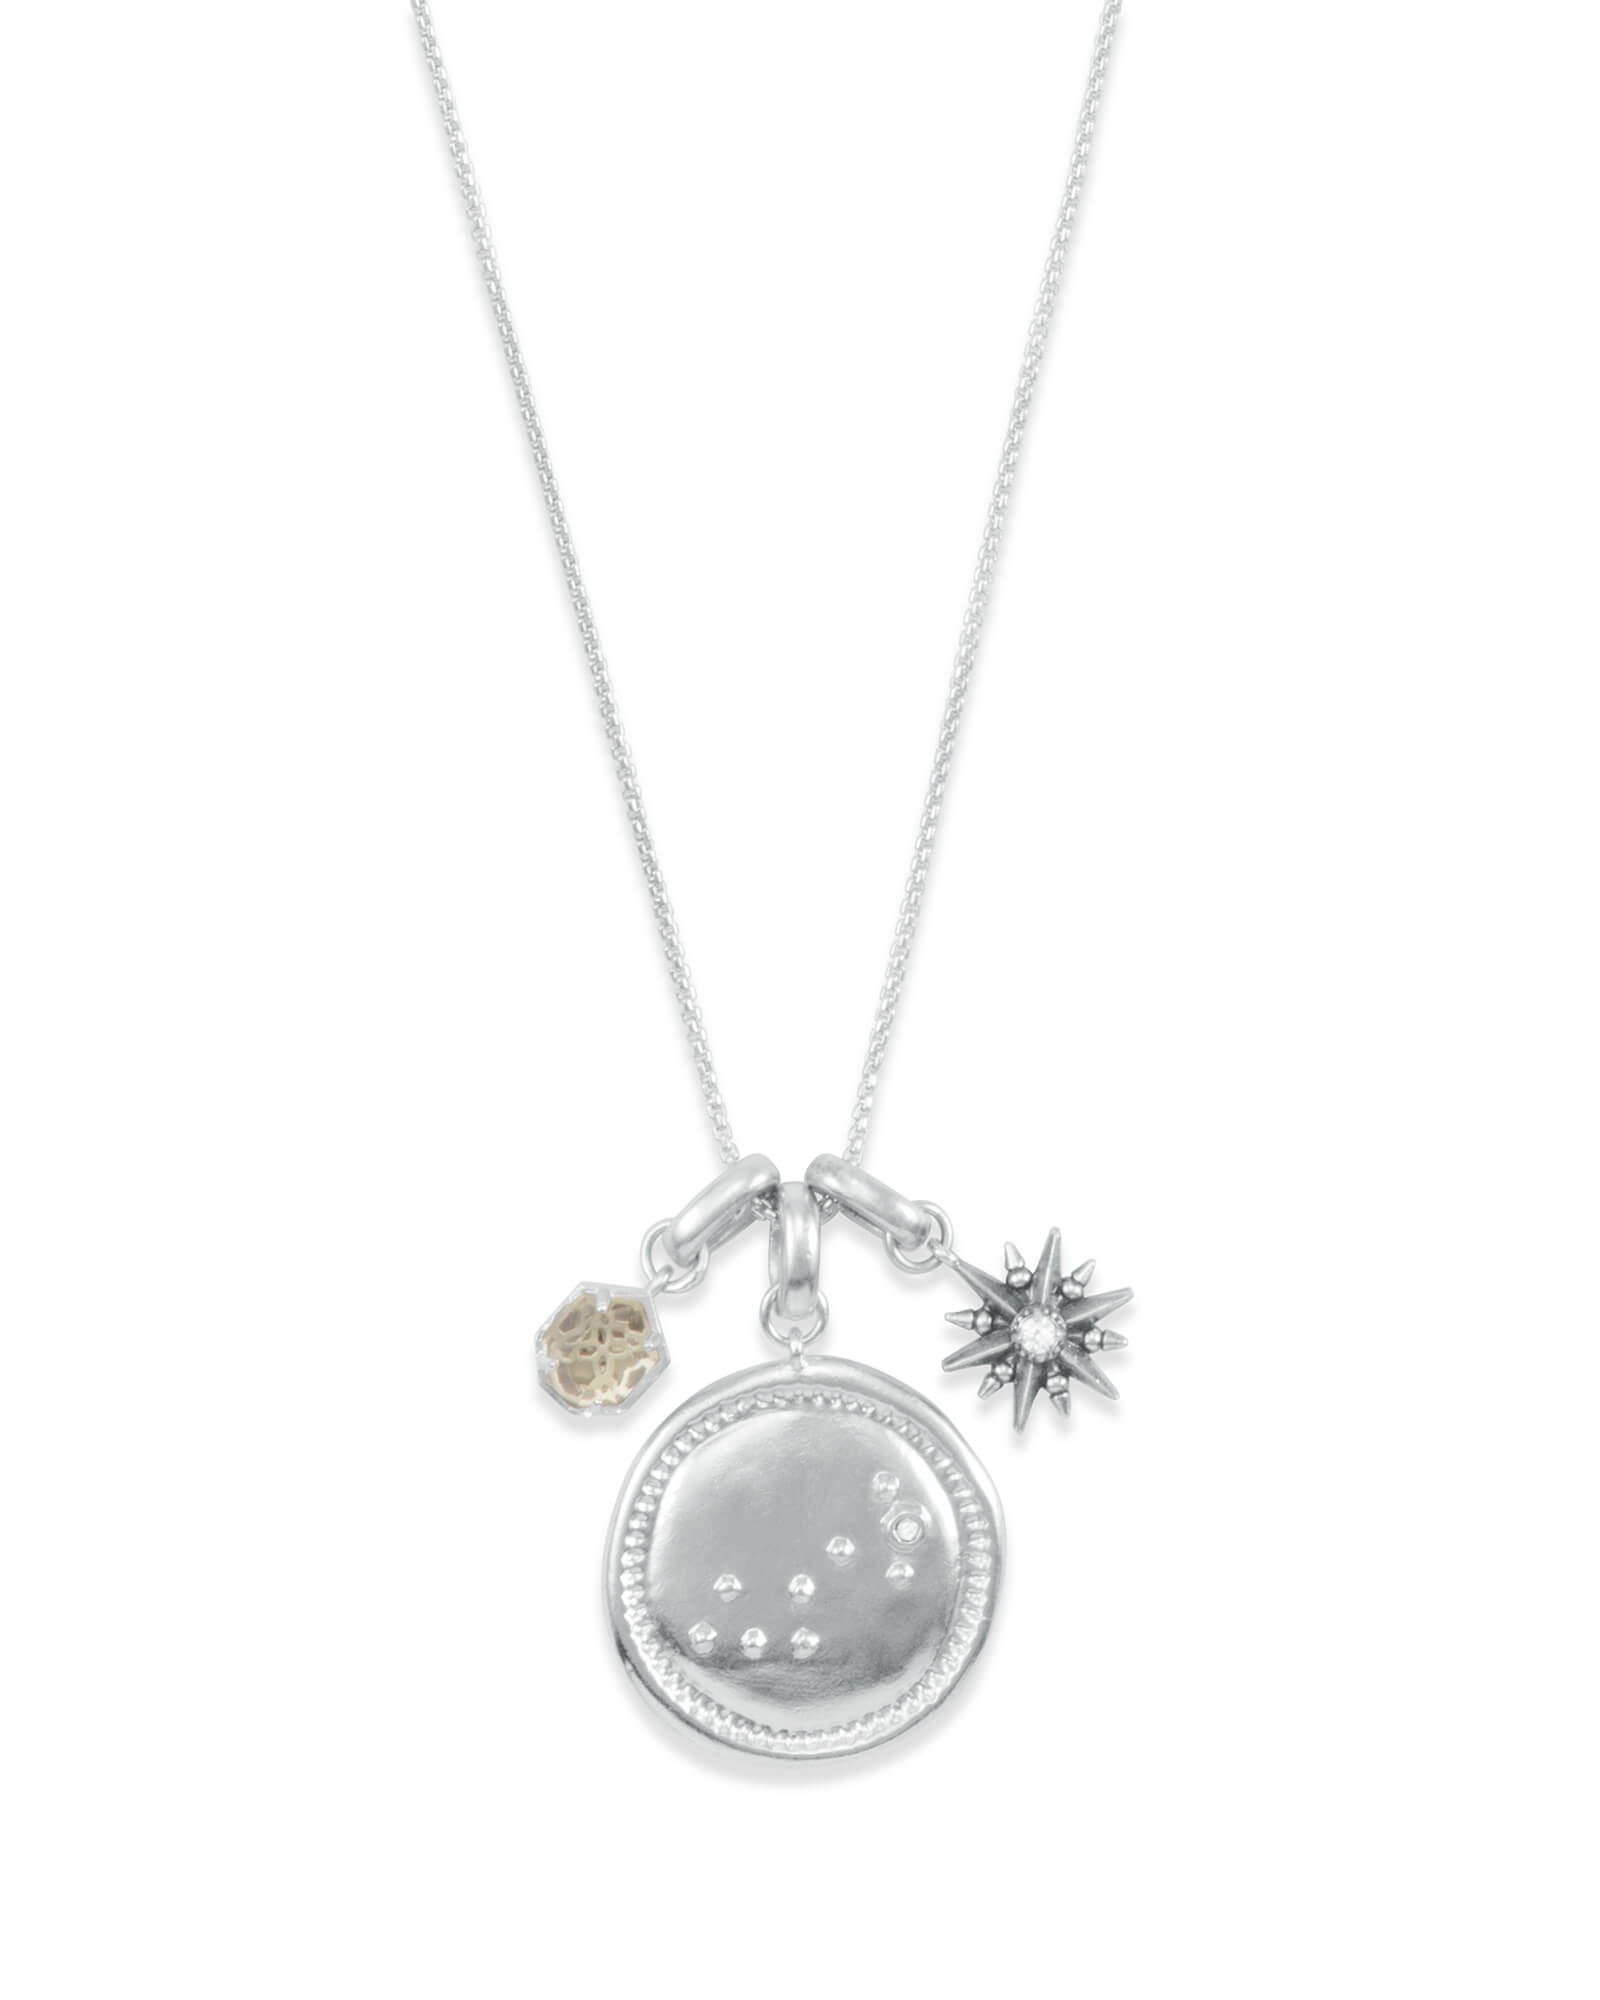 November Scorpio Charm Necklace Set in Silver